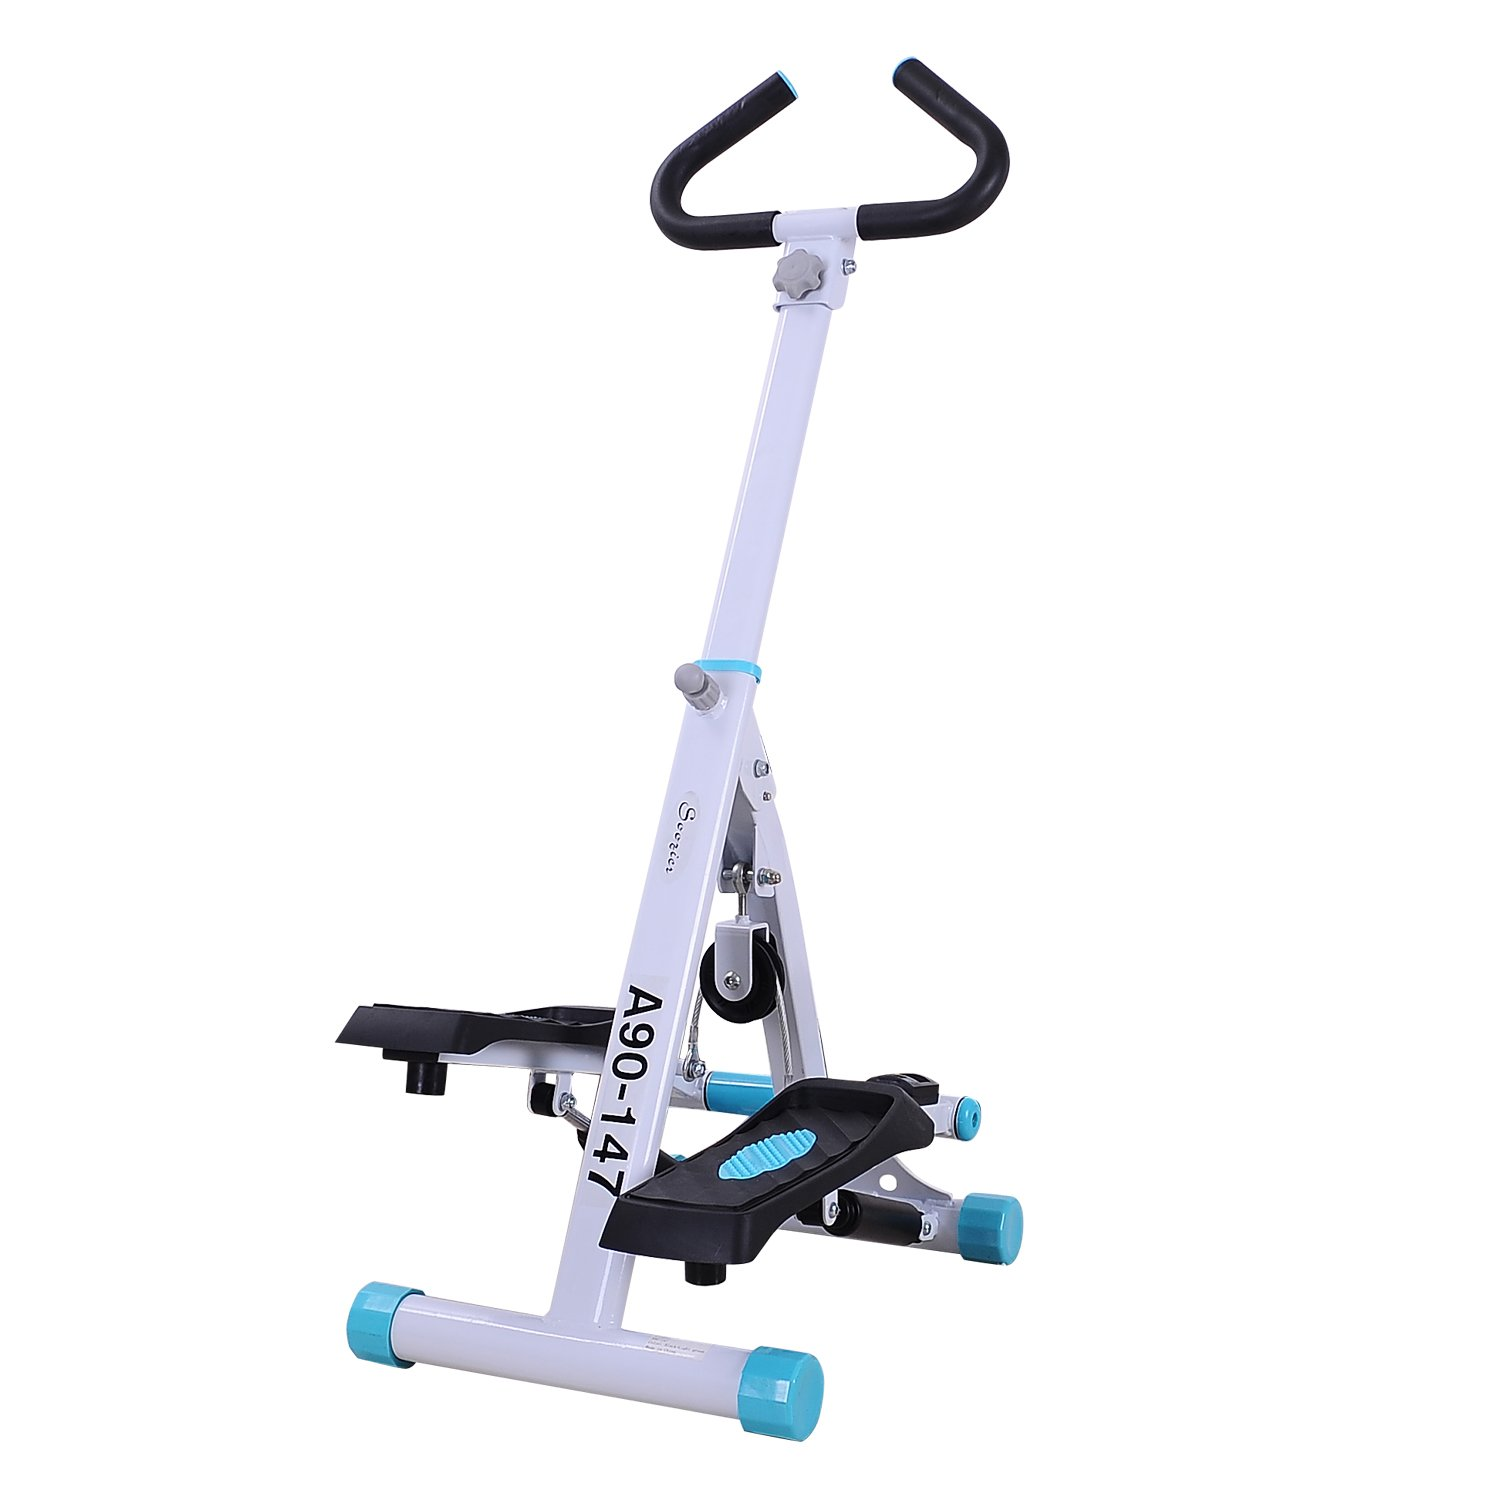 Soozier Adjustable Twist Stepper AB Body Workout Machine Aerobic Fitness Exercise w/Handle Bar and LCD Monitor by Soozier